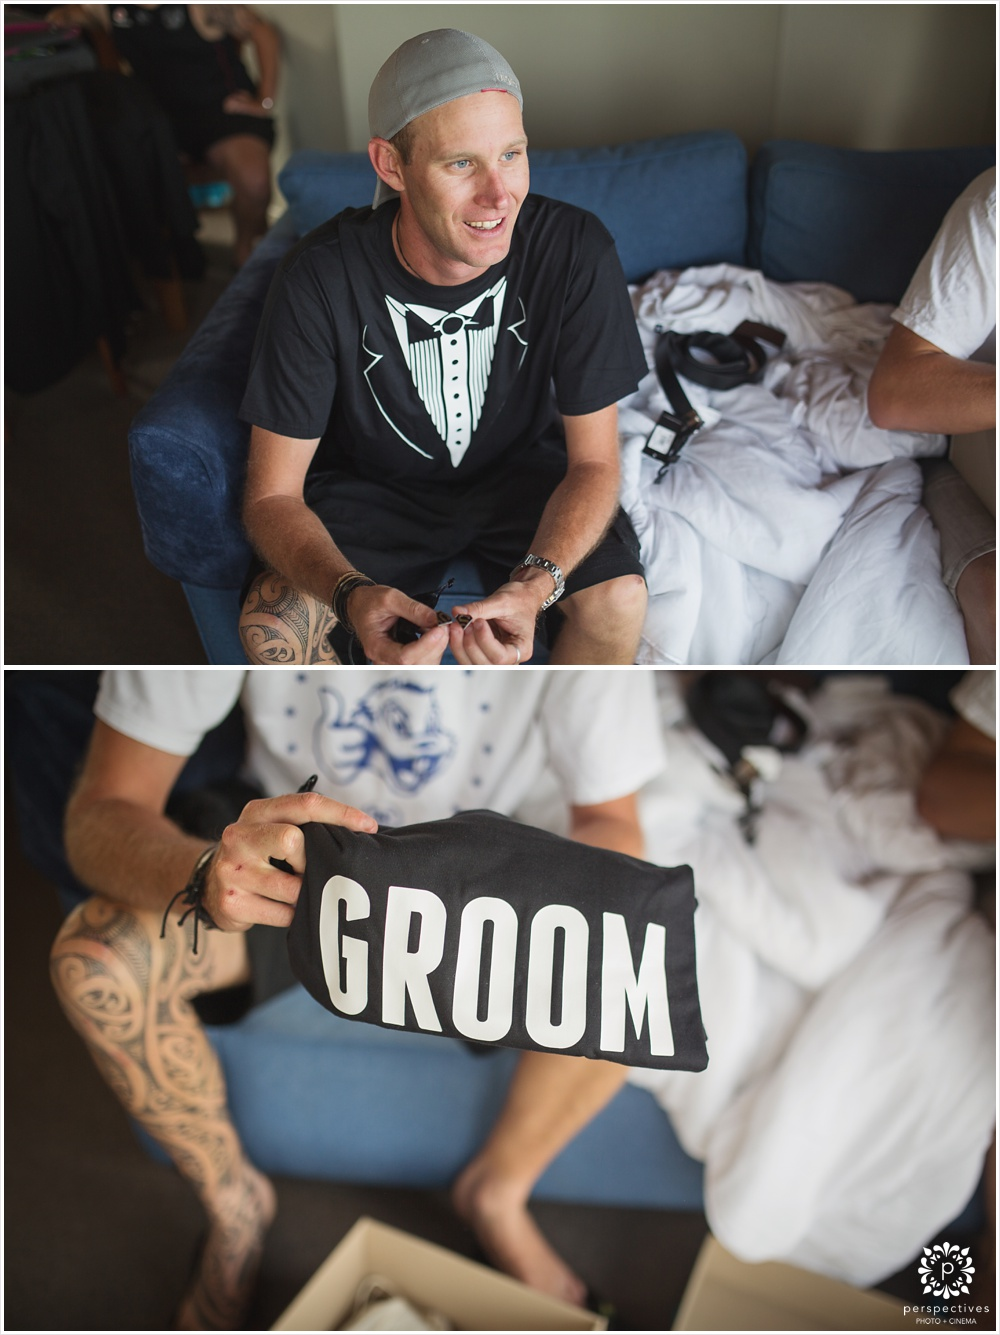 Groom wedding gifts